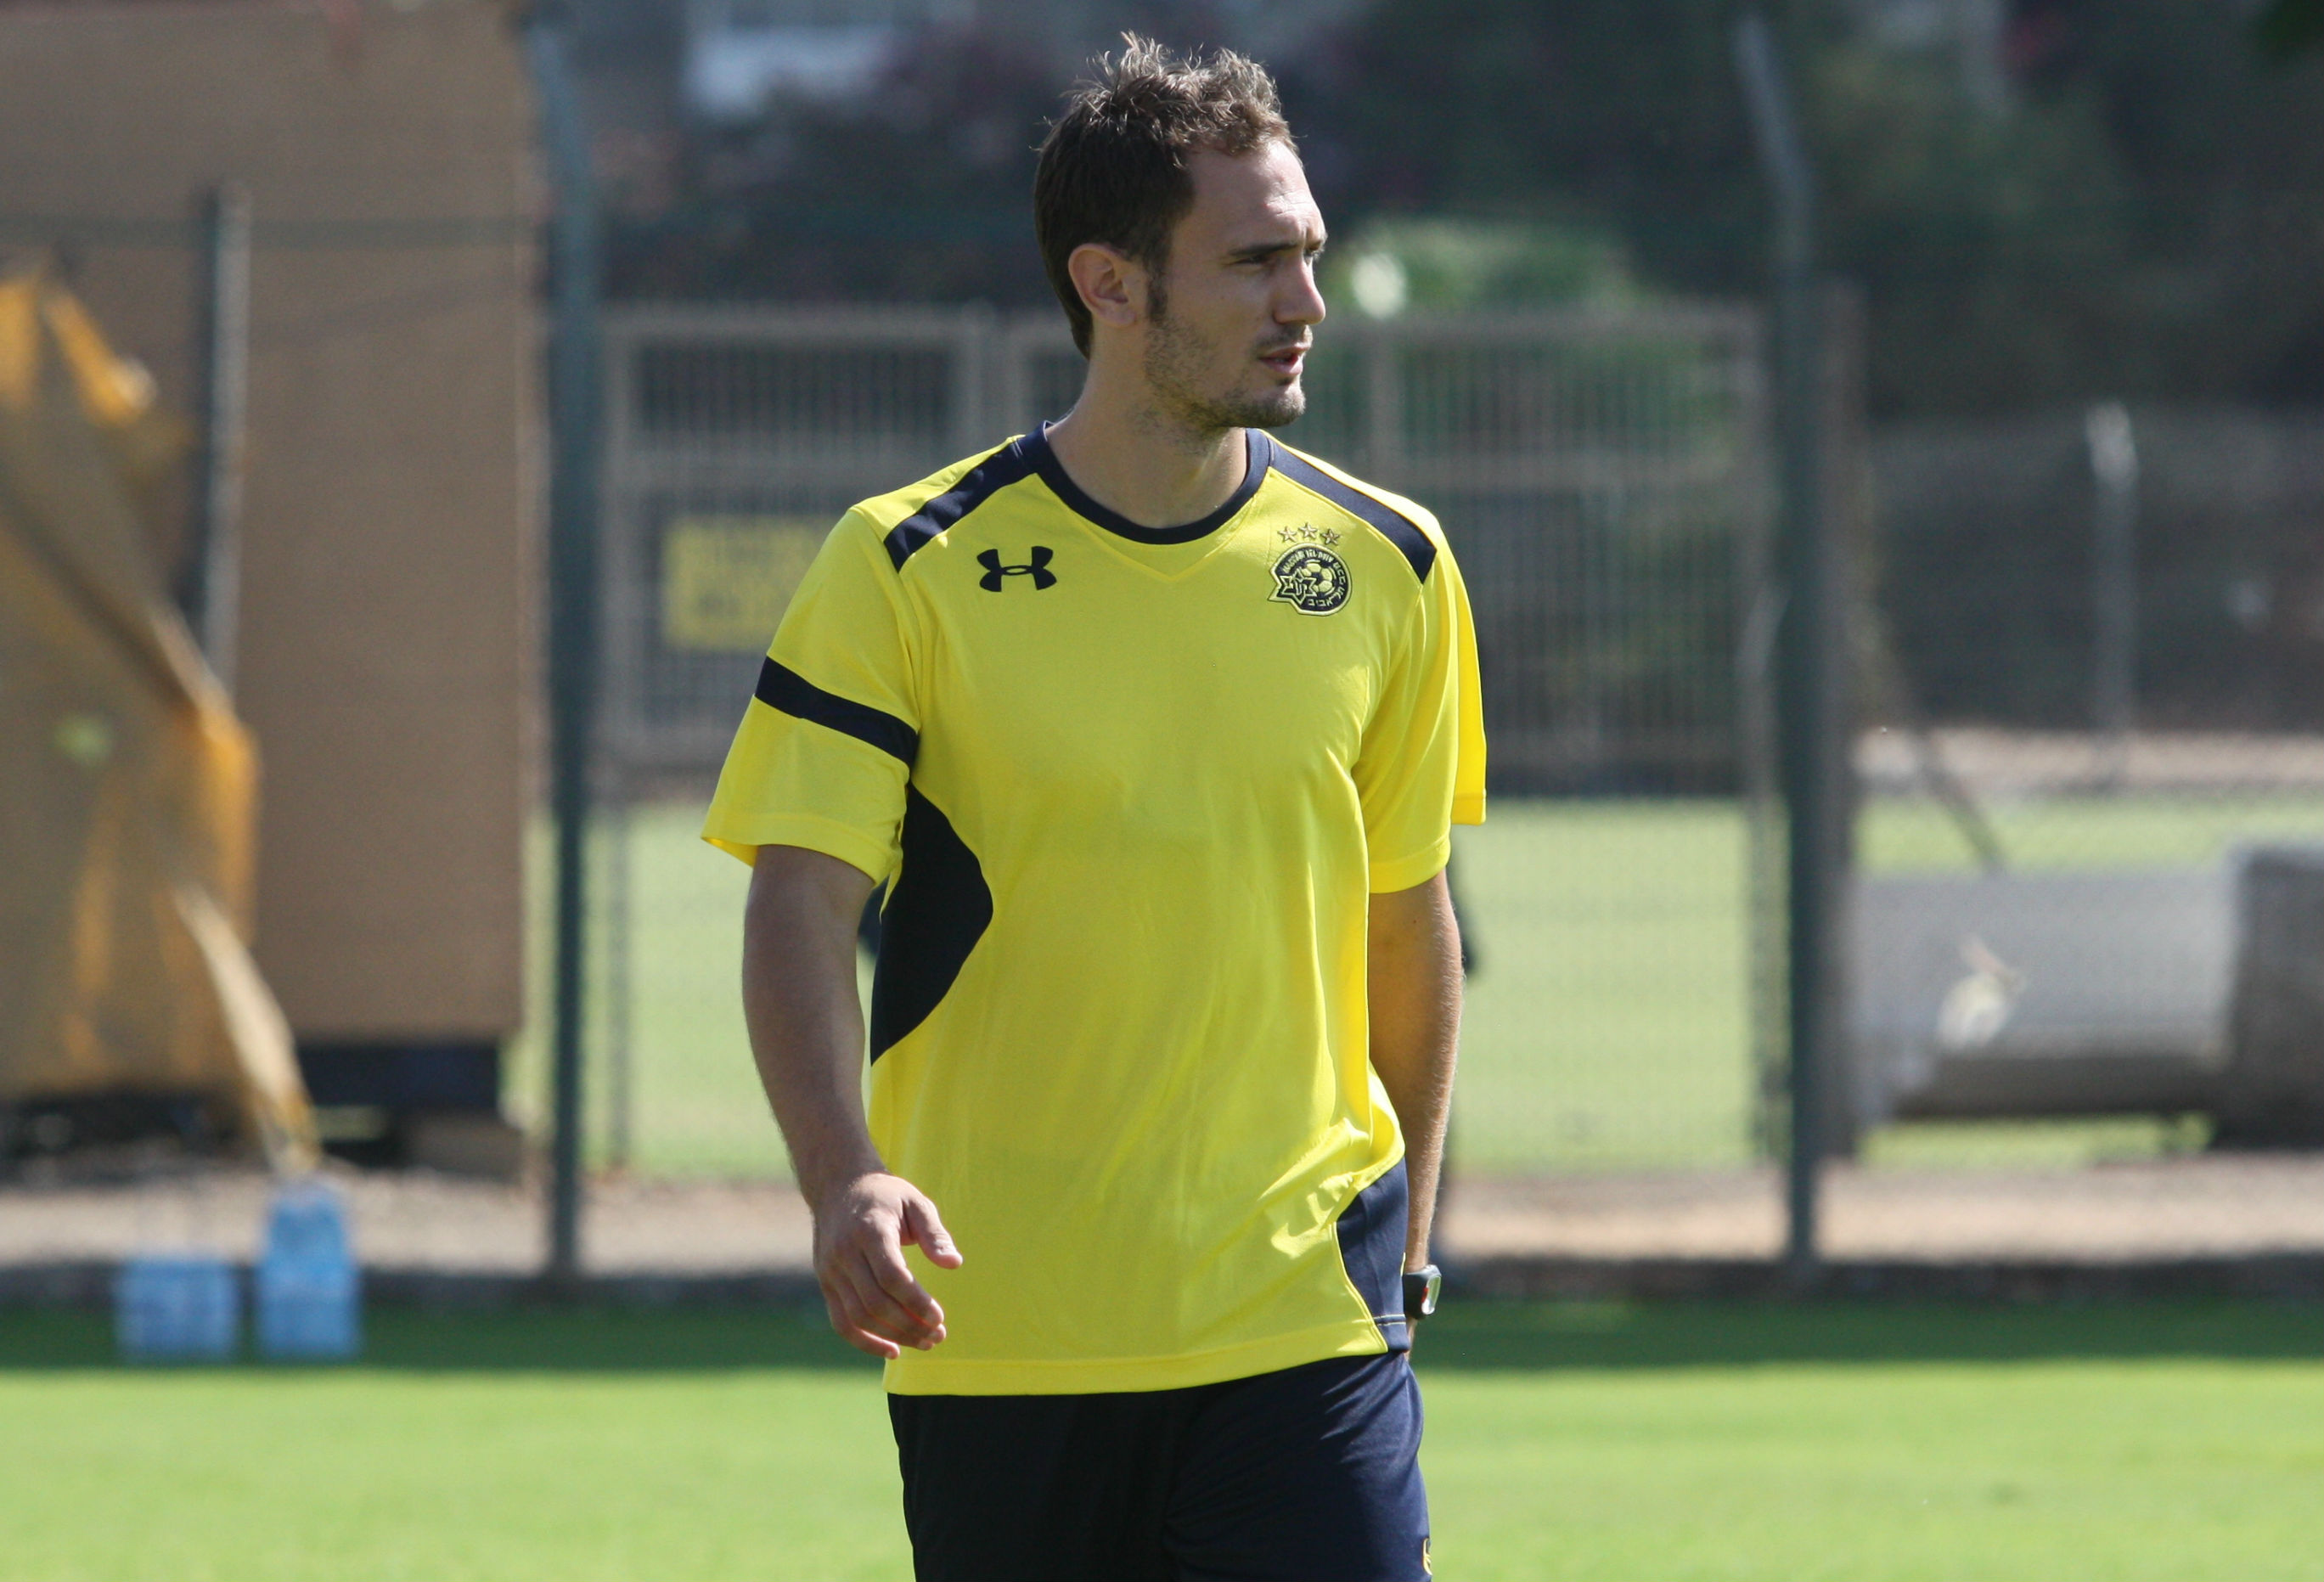 First Team Archives - Page 416 of 489 - Maccabi Tel Aviv Football Club 092d3c0126426